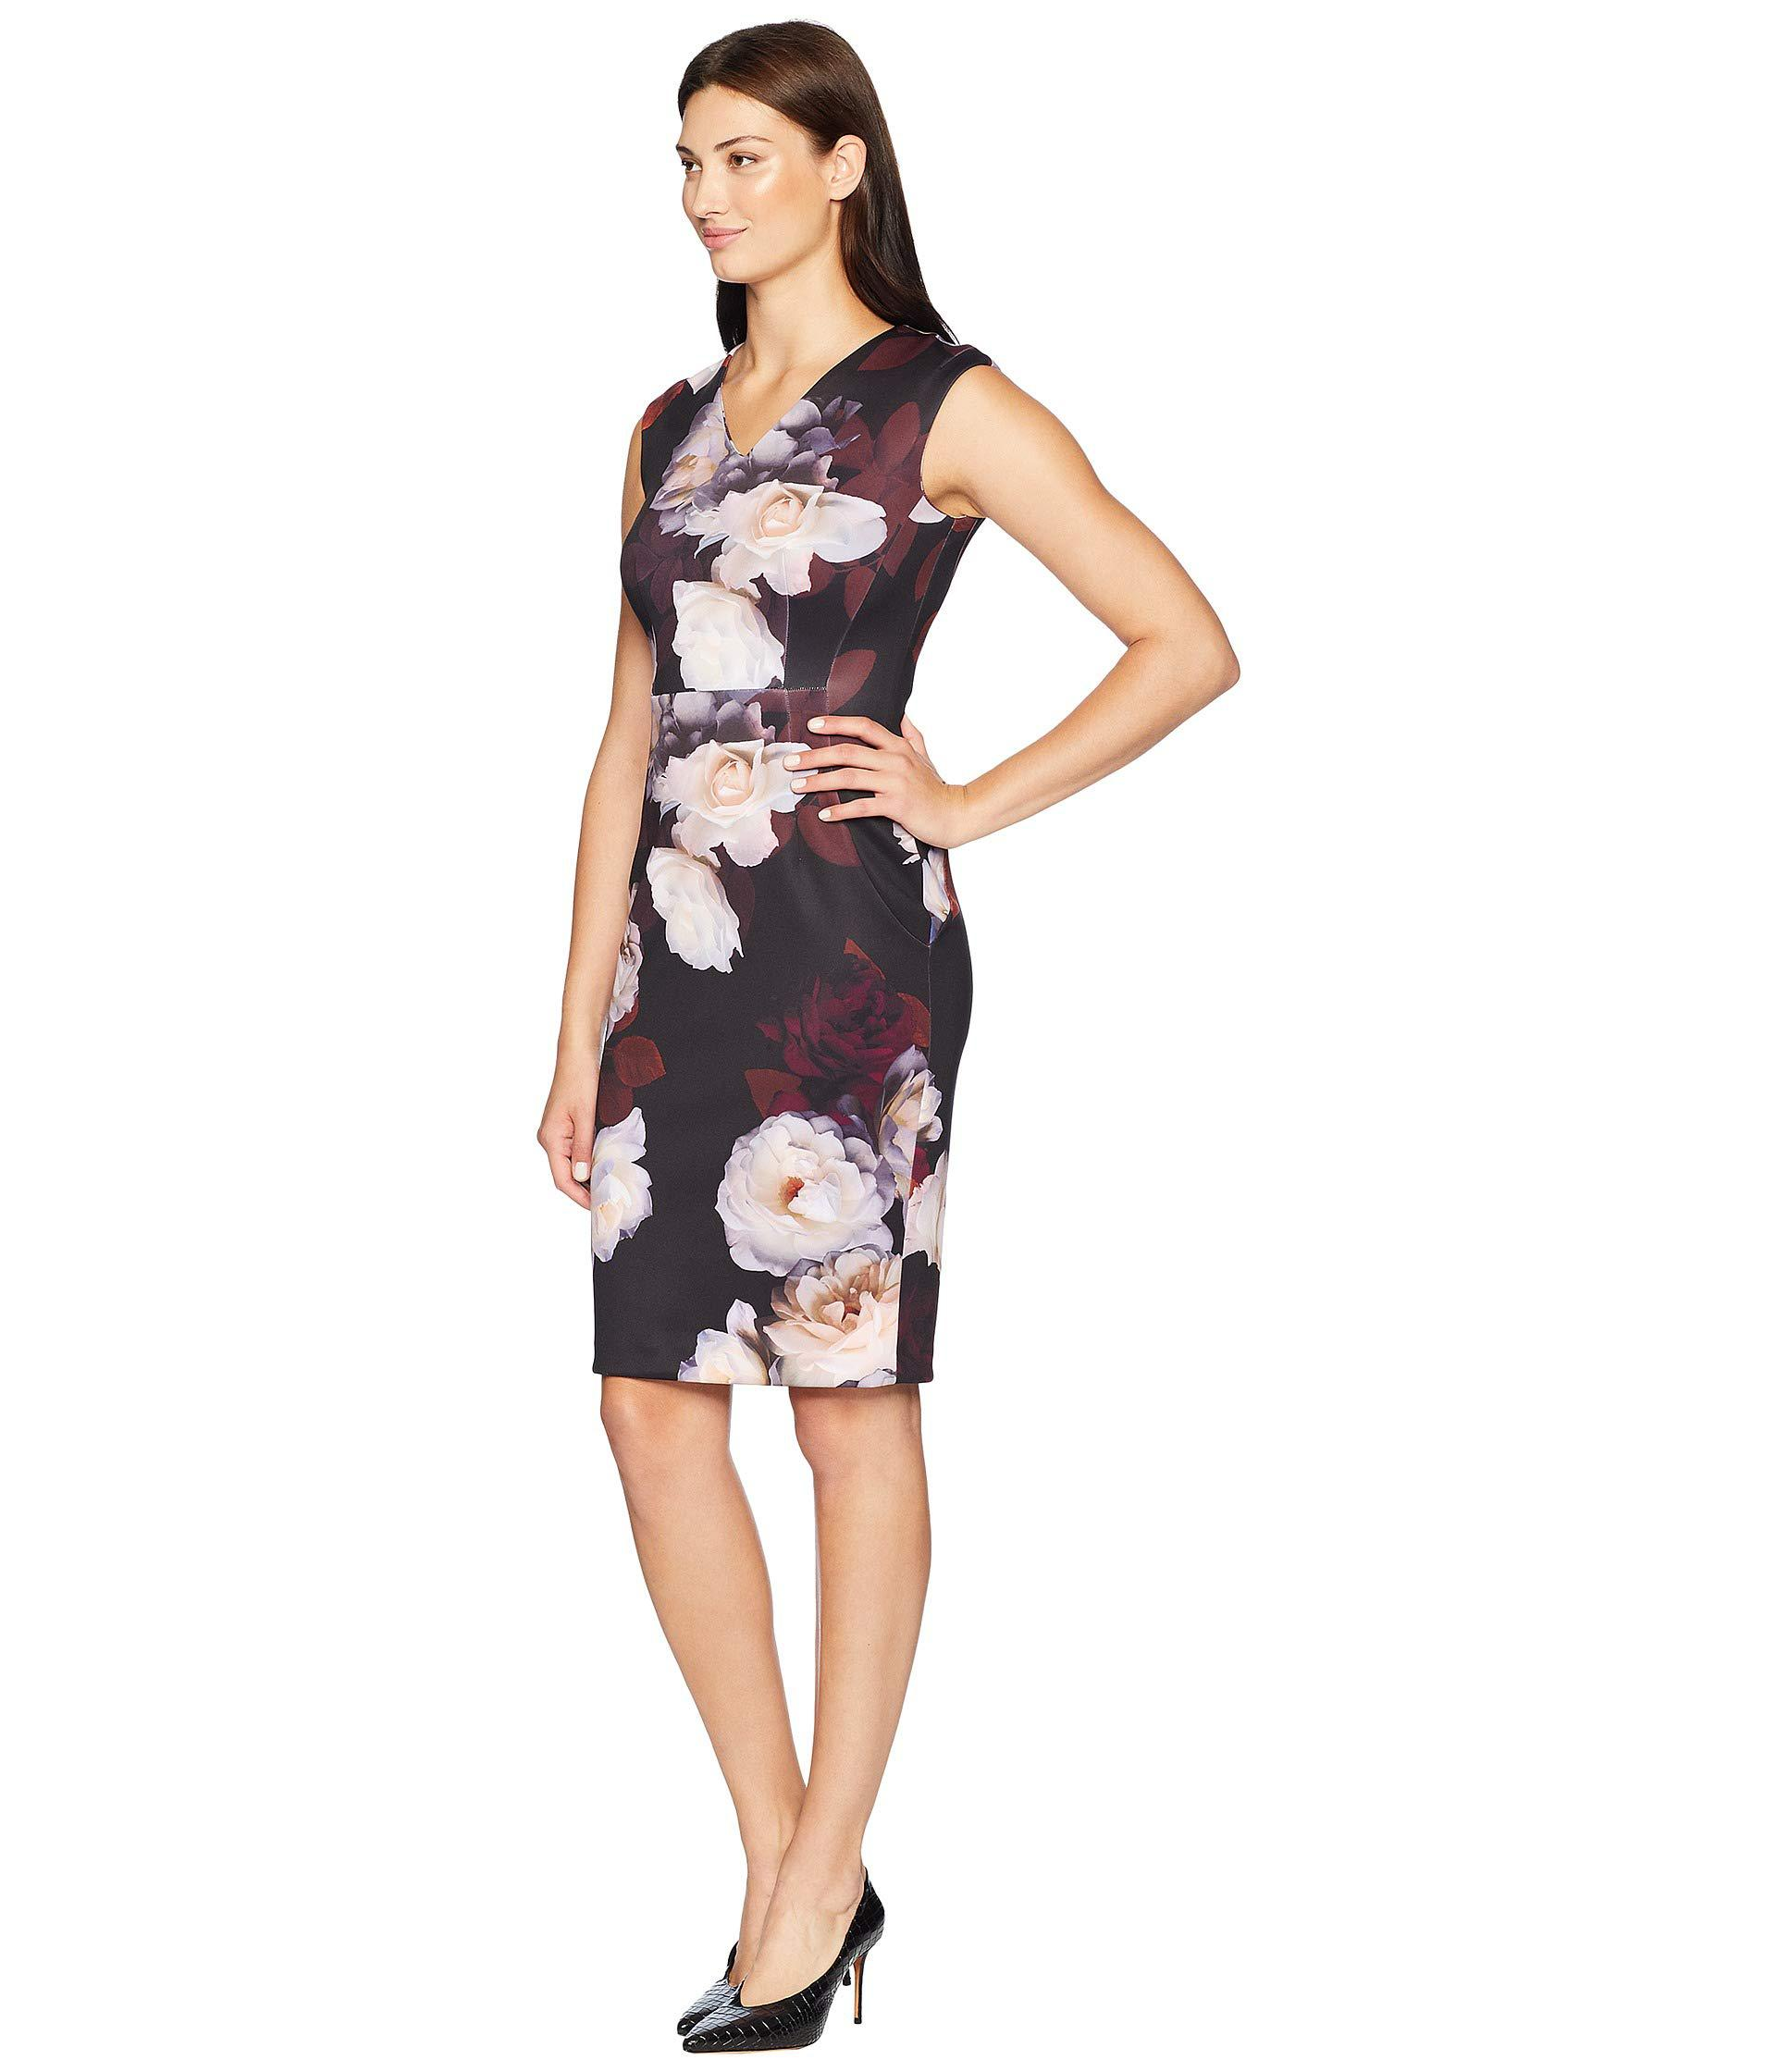 eb2b2a424bc0 Lyst - Calvin Klein Floral V-neck Sheath Dress Cd8m38av